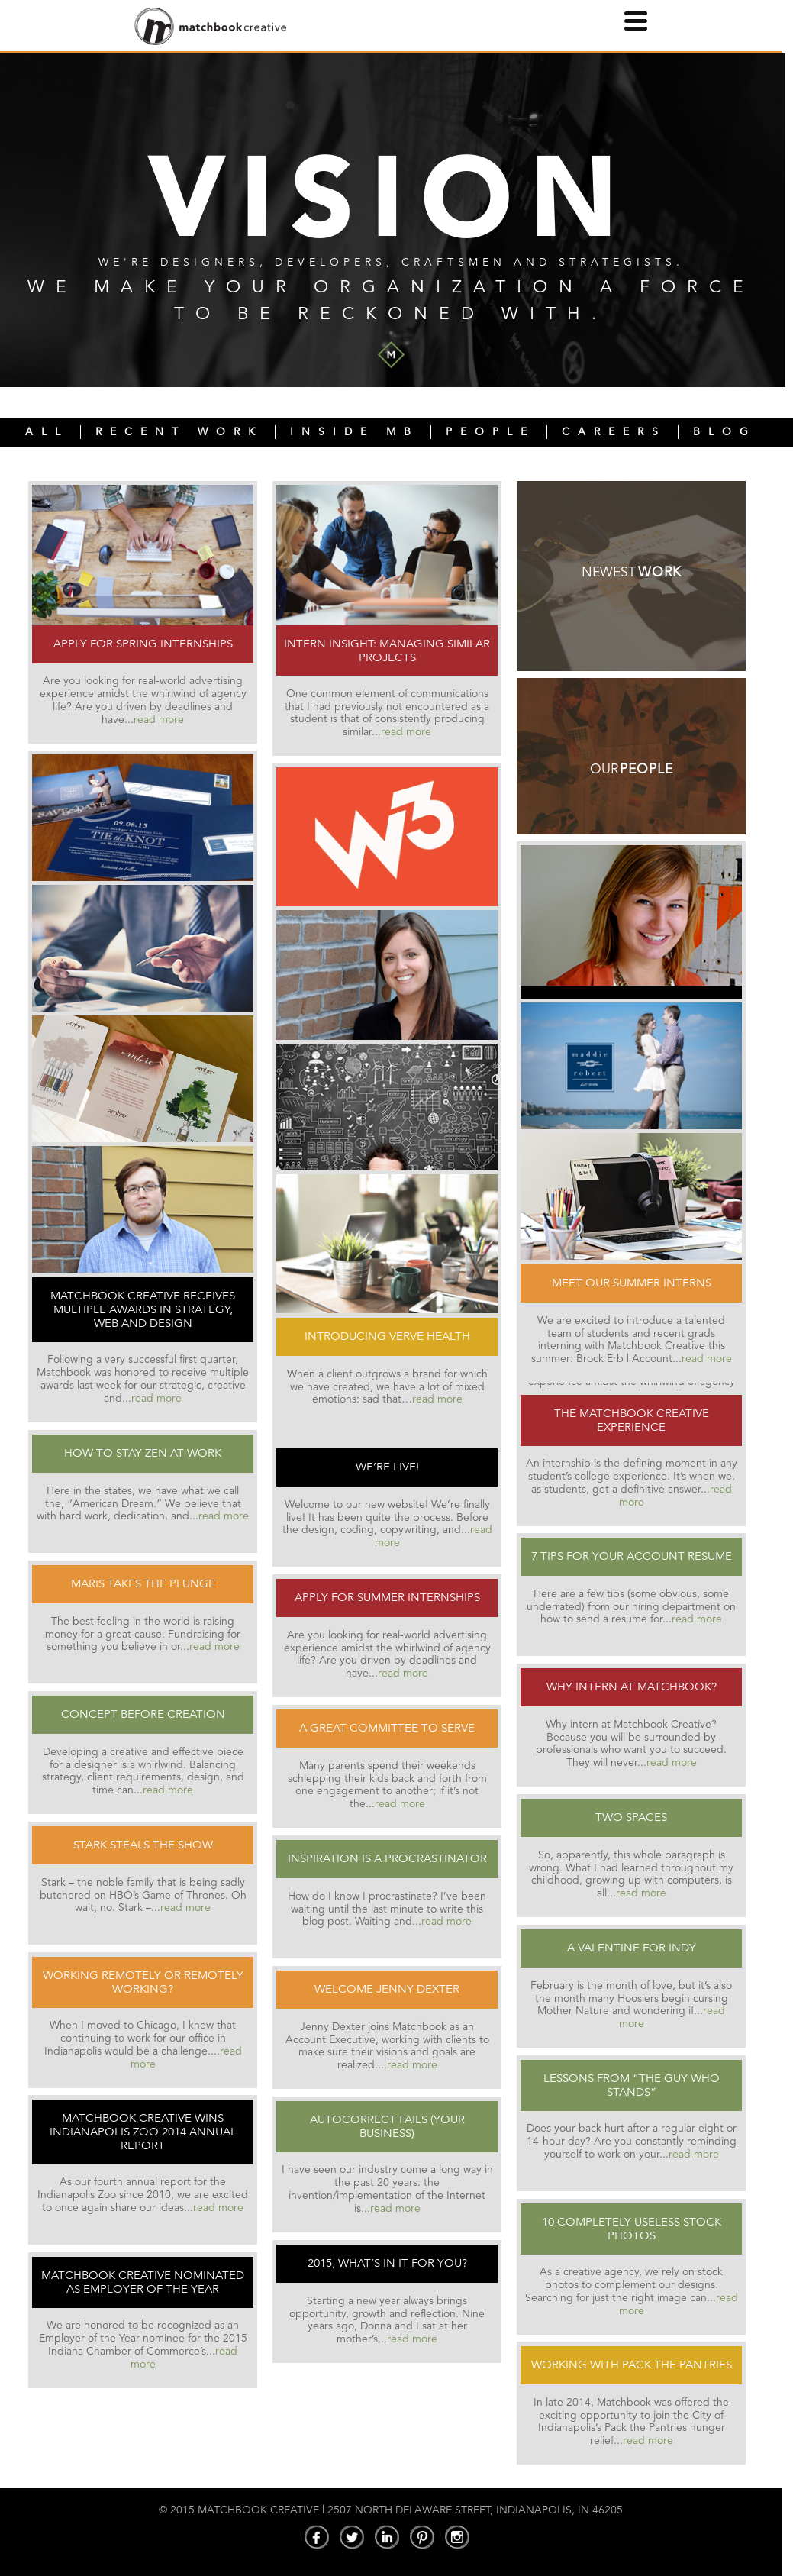 Matchbook Creative Competitors, Revenue and Employees - Owler